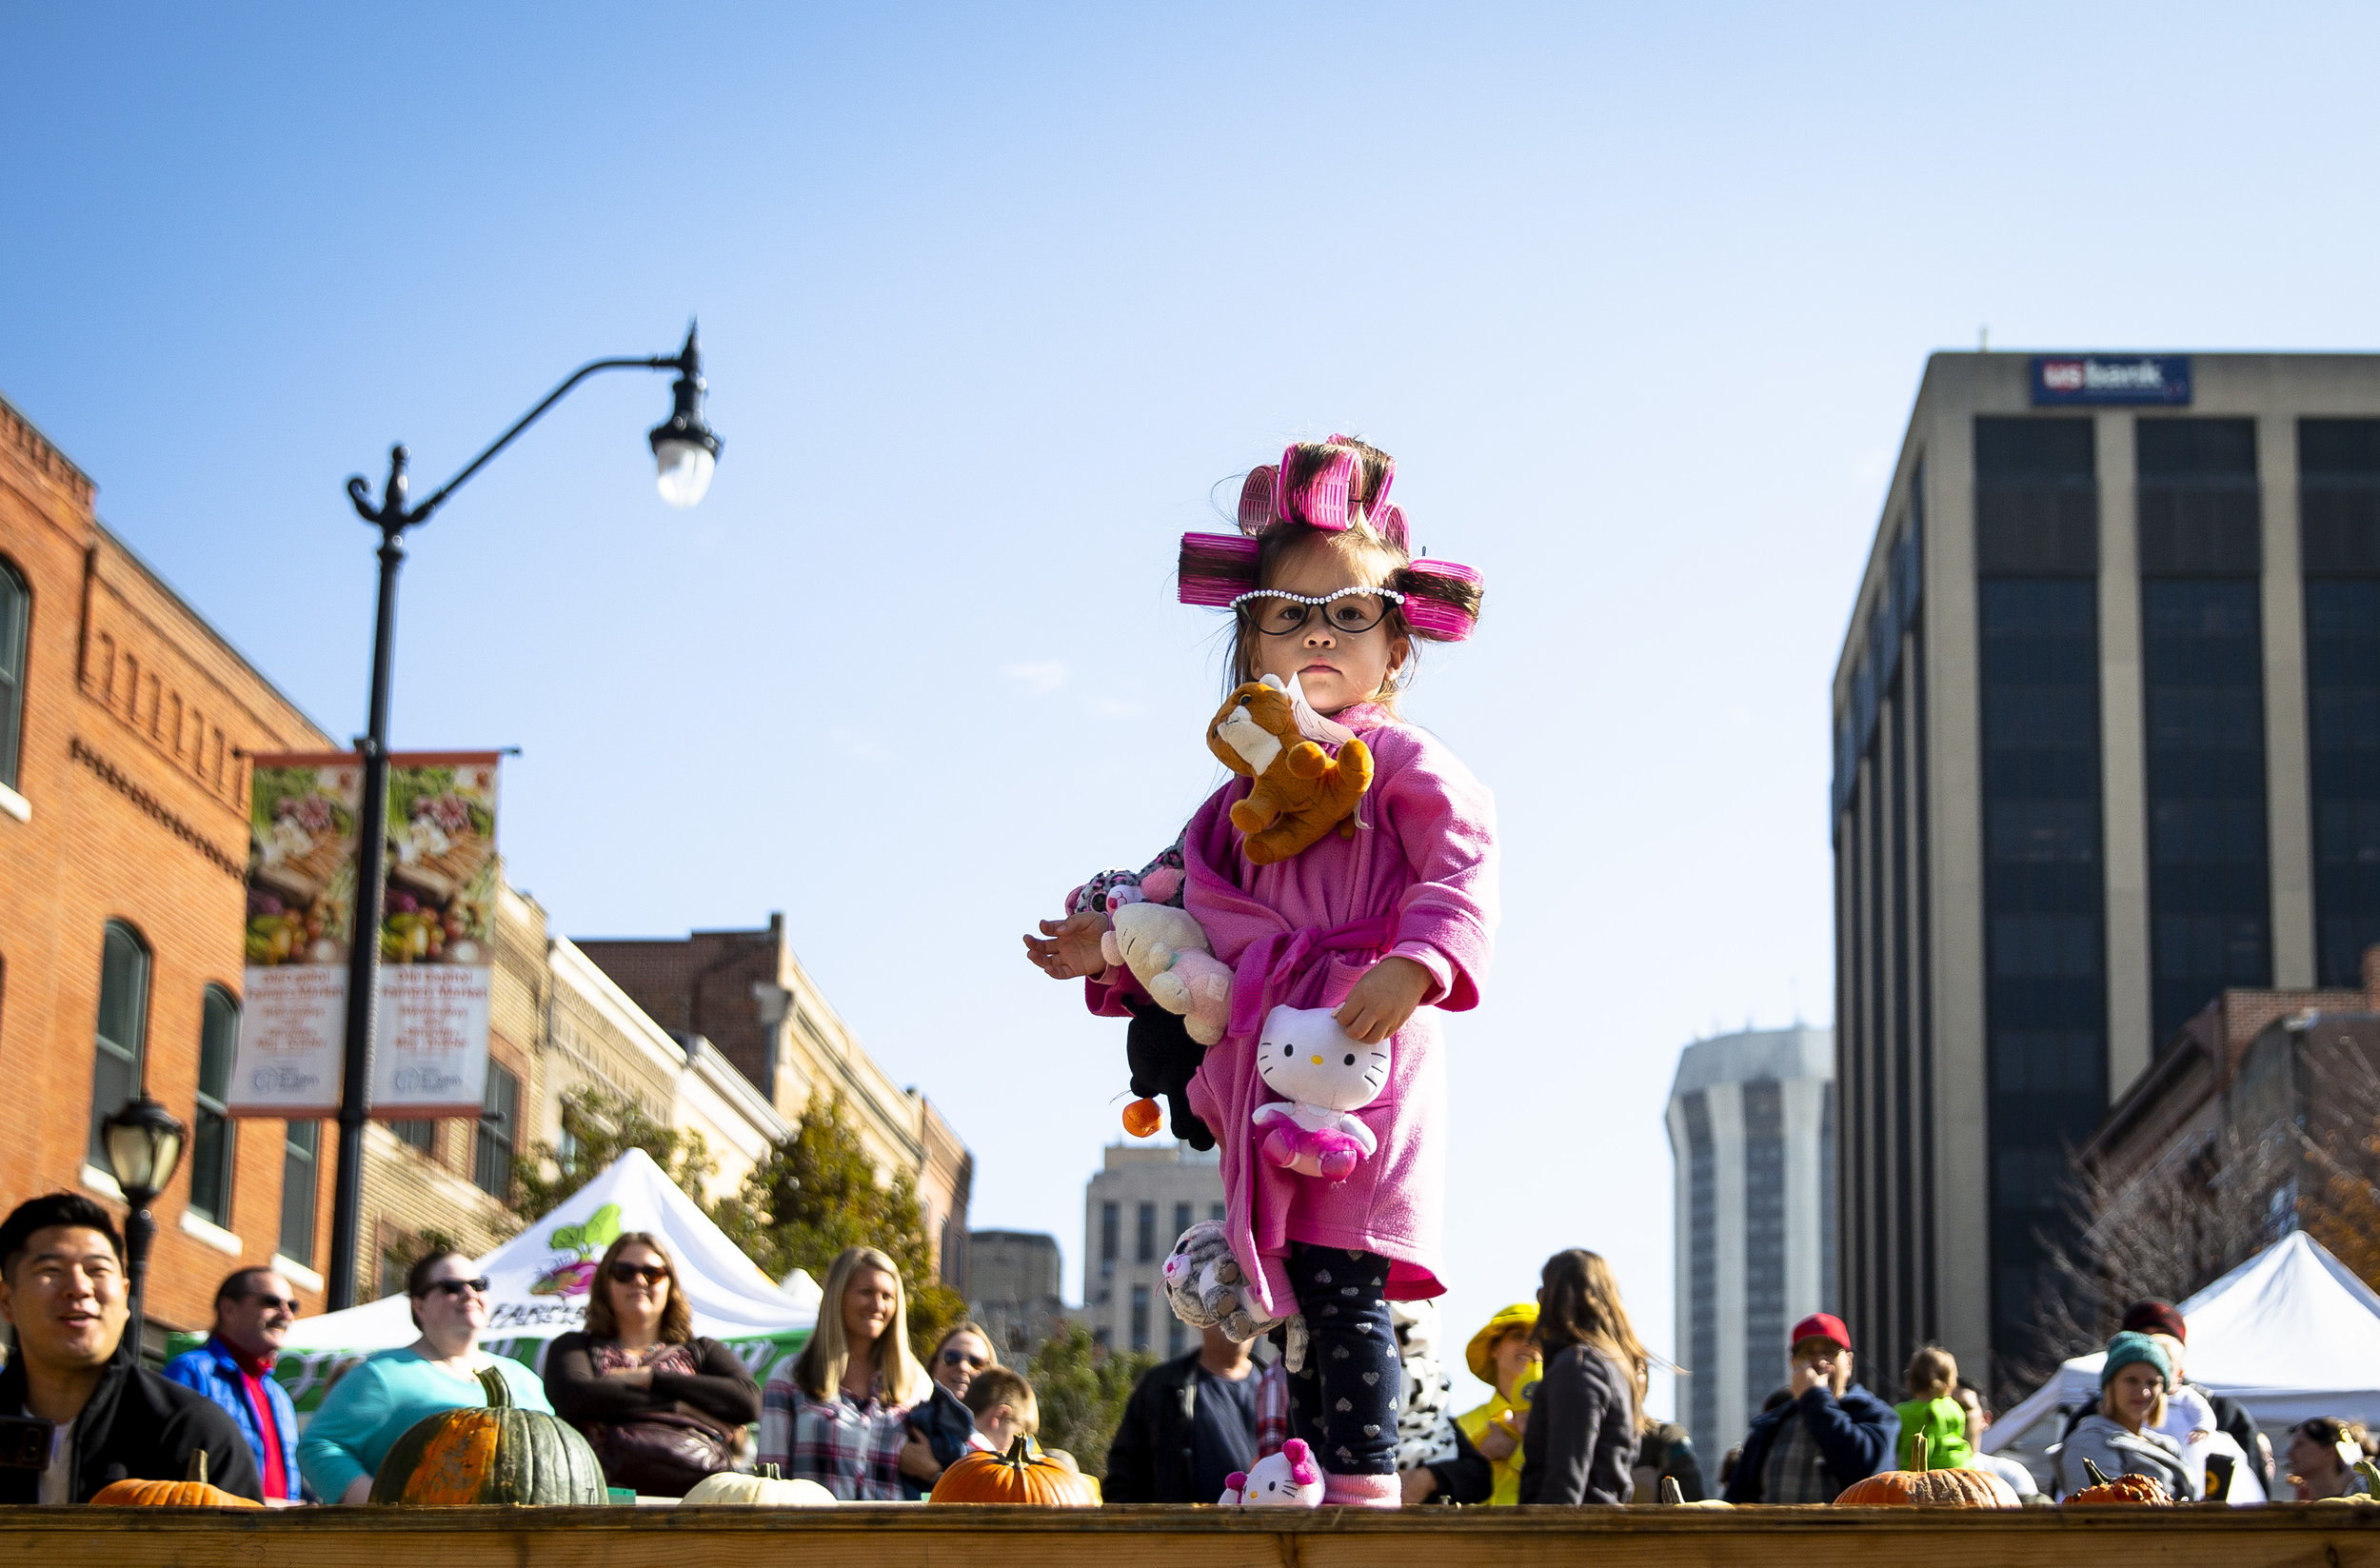 Karin Houzenga, 3, dressed as a crazy cat lady, walks the runway during the costume contest at the Halloween at the Market event Saturday, Oct. 27, 2018 at the Old Capitol Farmer's Market in Springfield, Ill. Sponsored by Downtown Springfield, Inc., the annual event wraps up the end of the market season. [Rich Saal/The State Journal-Register]